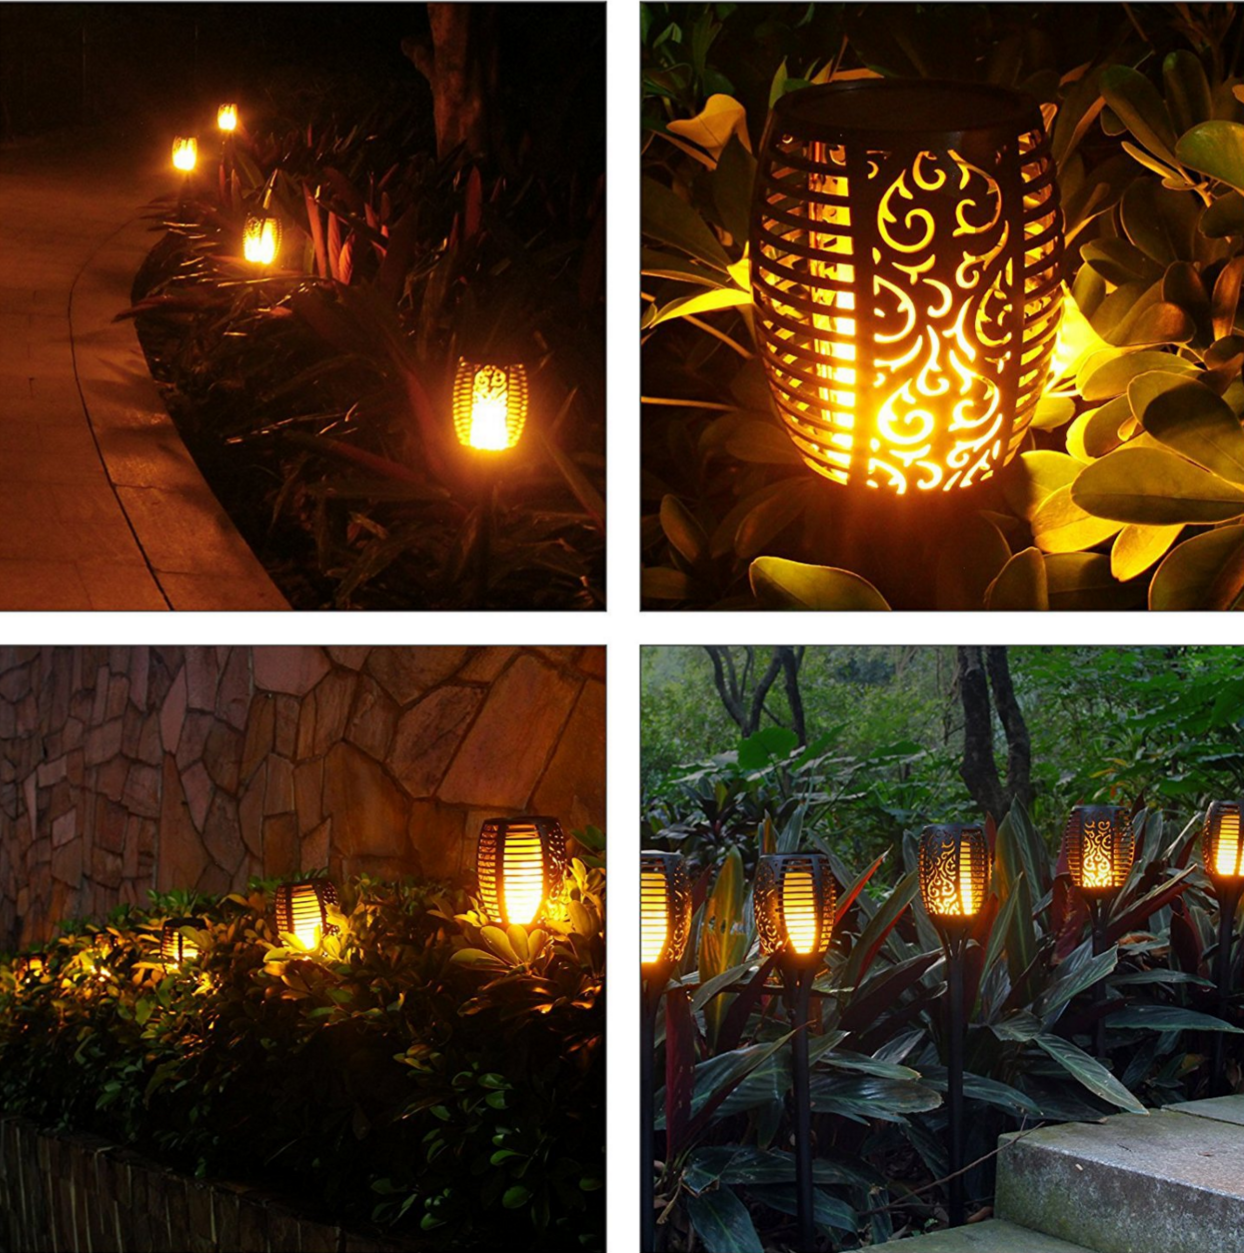 Solar Garden Light Solar Torch Lights Waterproof Flickering Flames Outdoor Solar Spotlights Landscape Decoration Lighting Dusk to Dawn Auto On/Off for Patio Deck Driveway